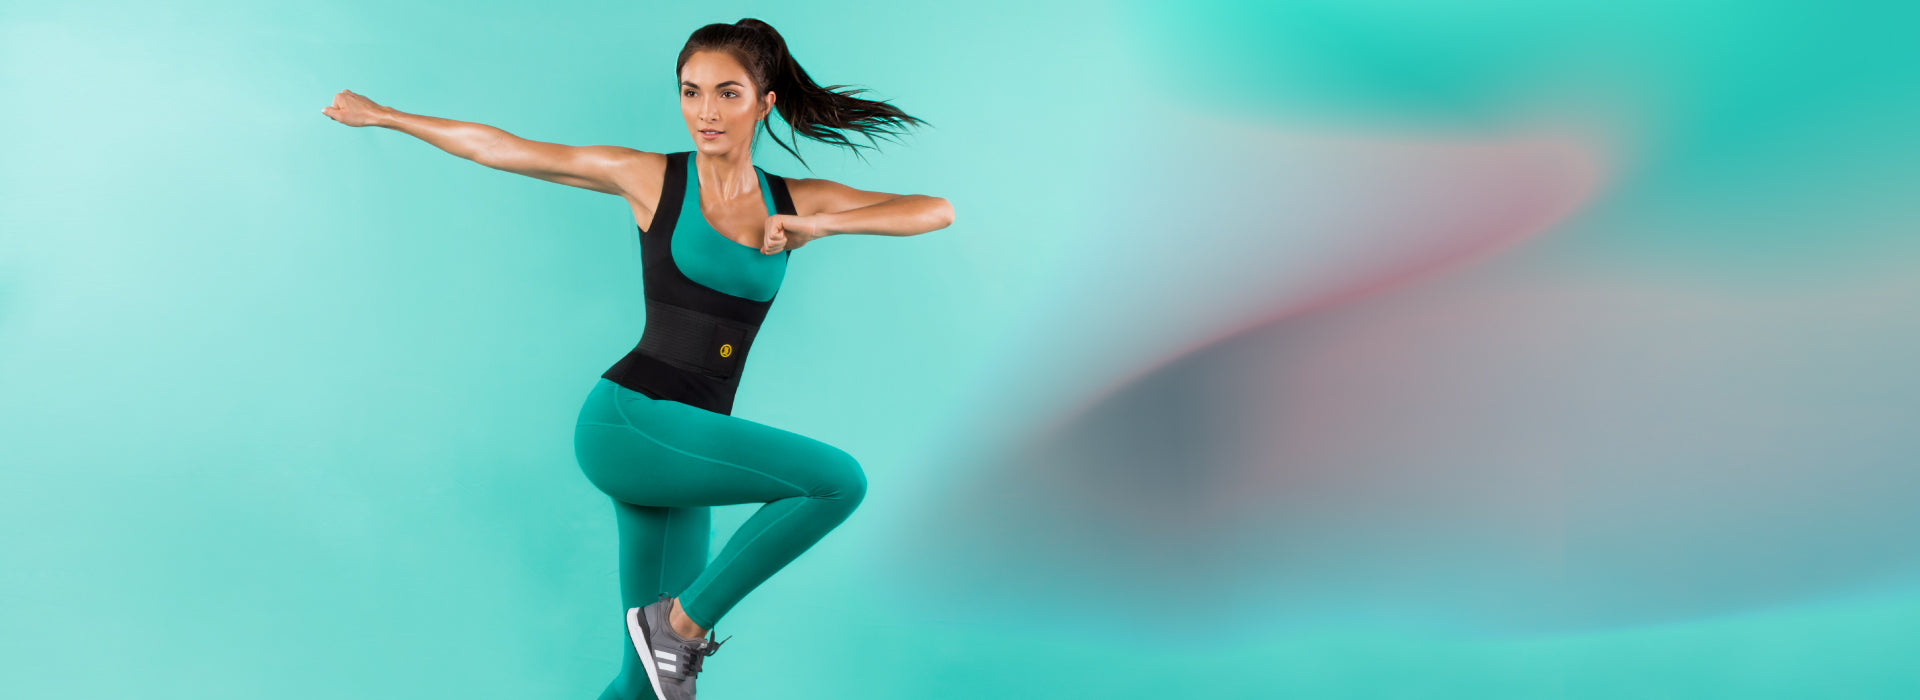 Banner Cami Hot Instant Trainer